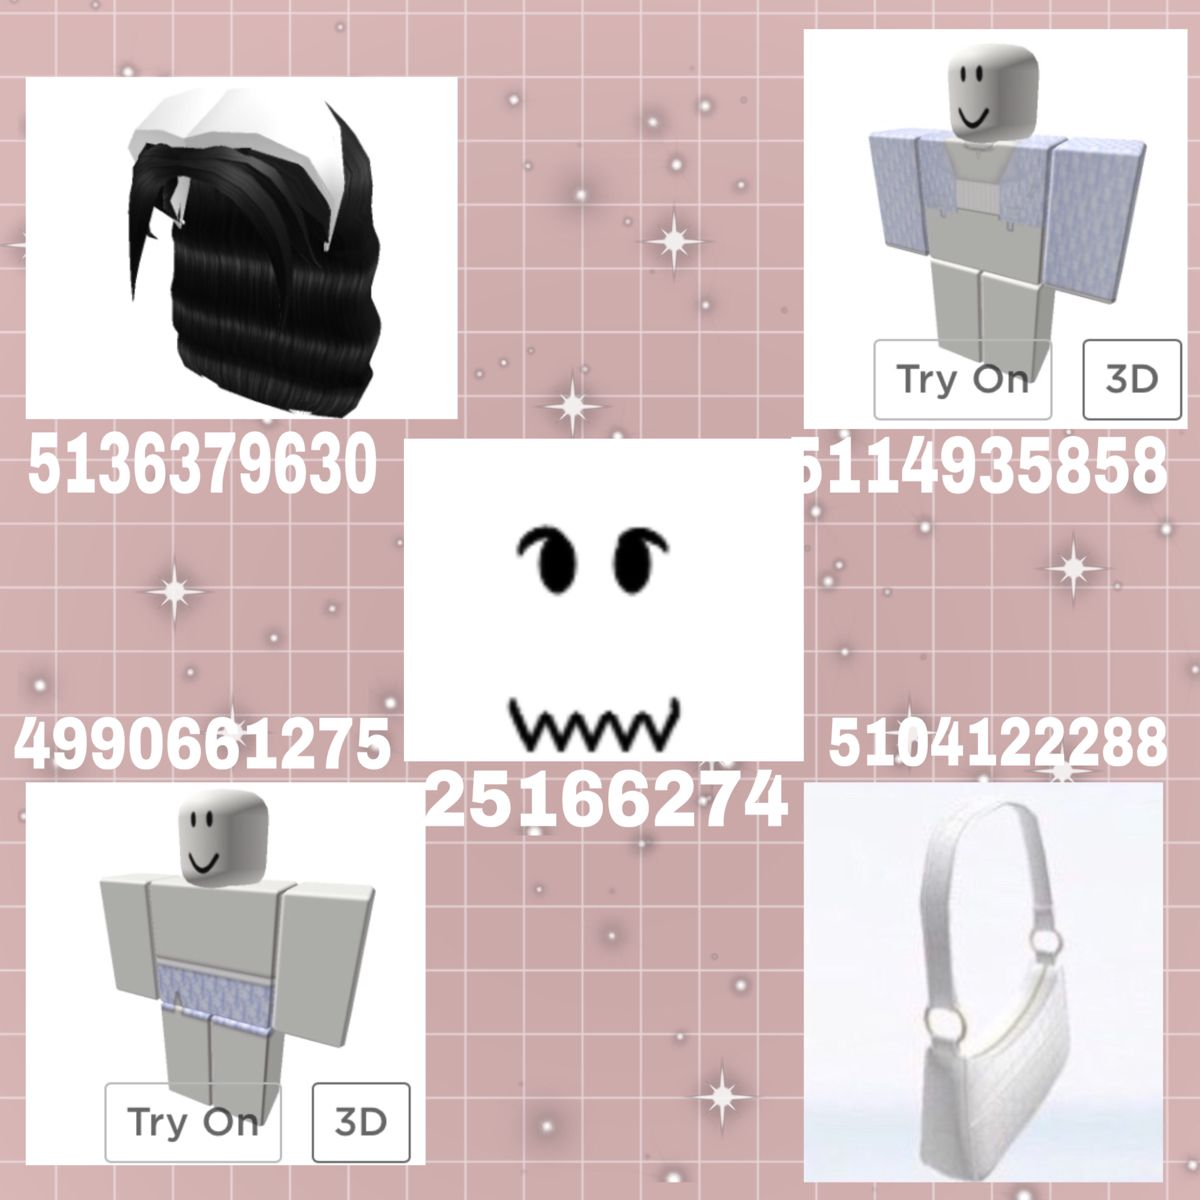 Roblox Aesthetic Usernames Ideas